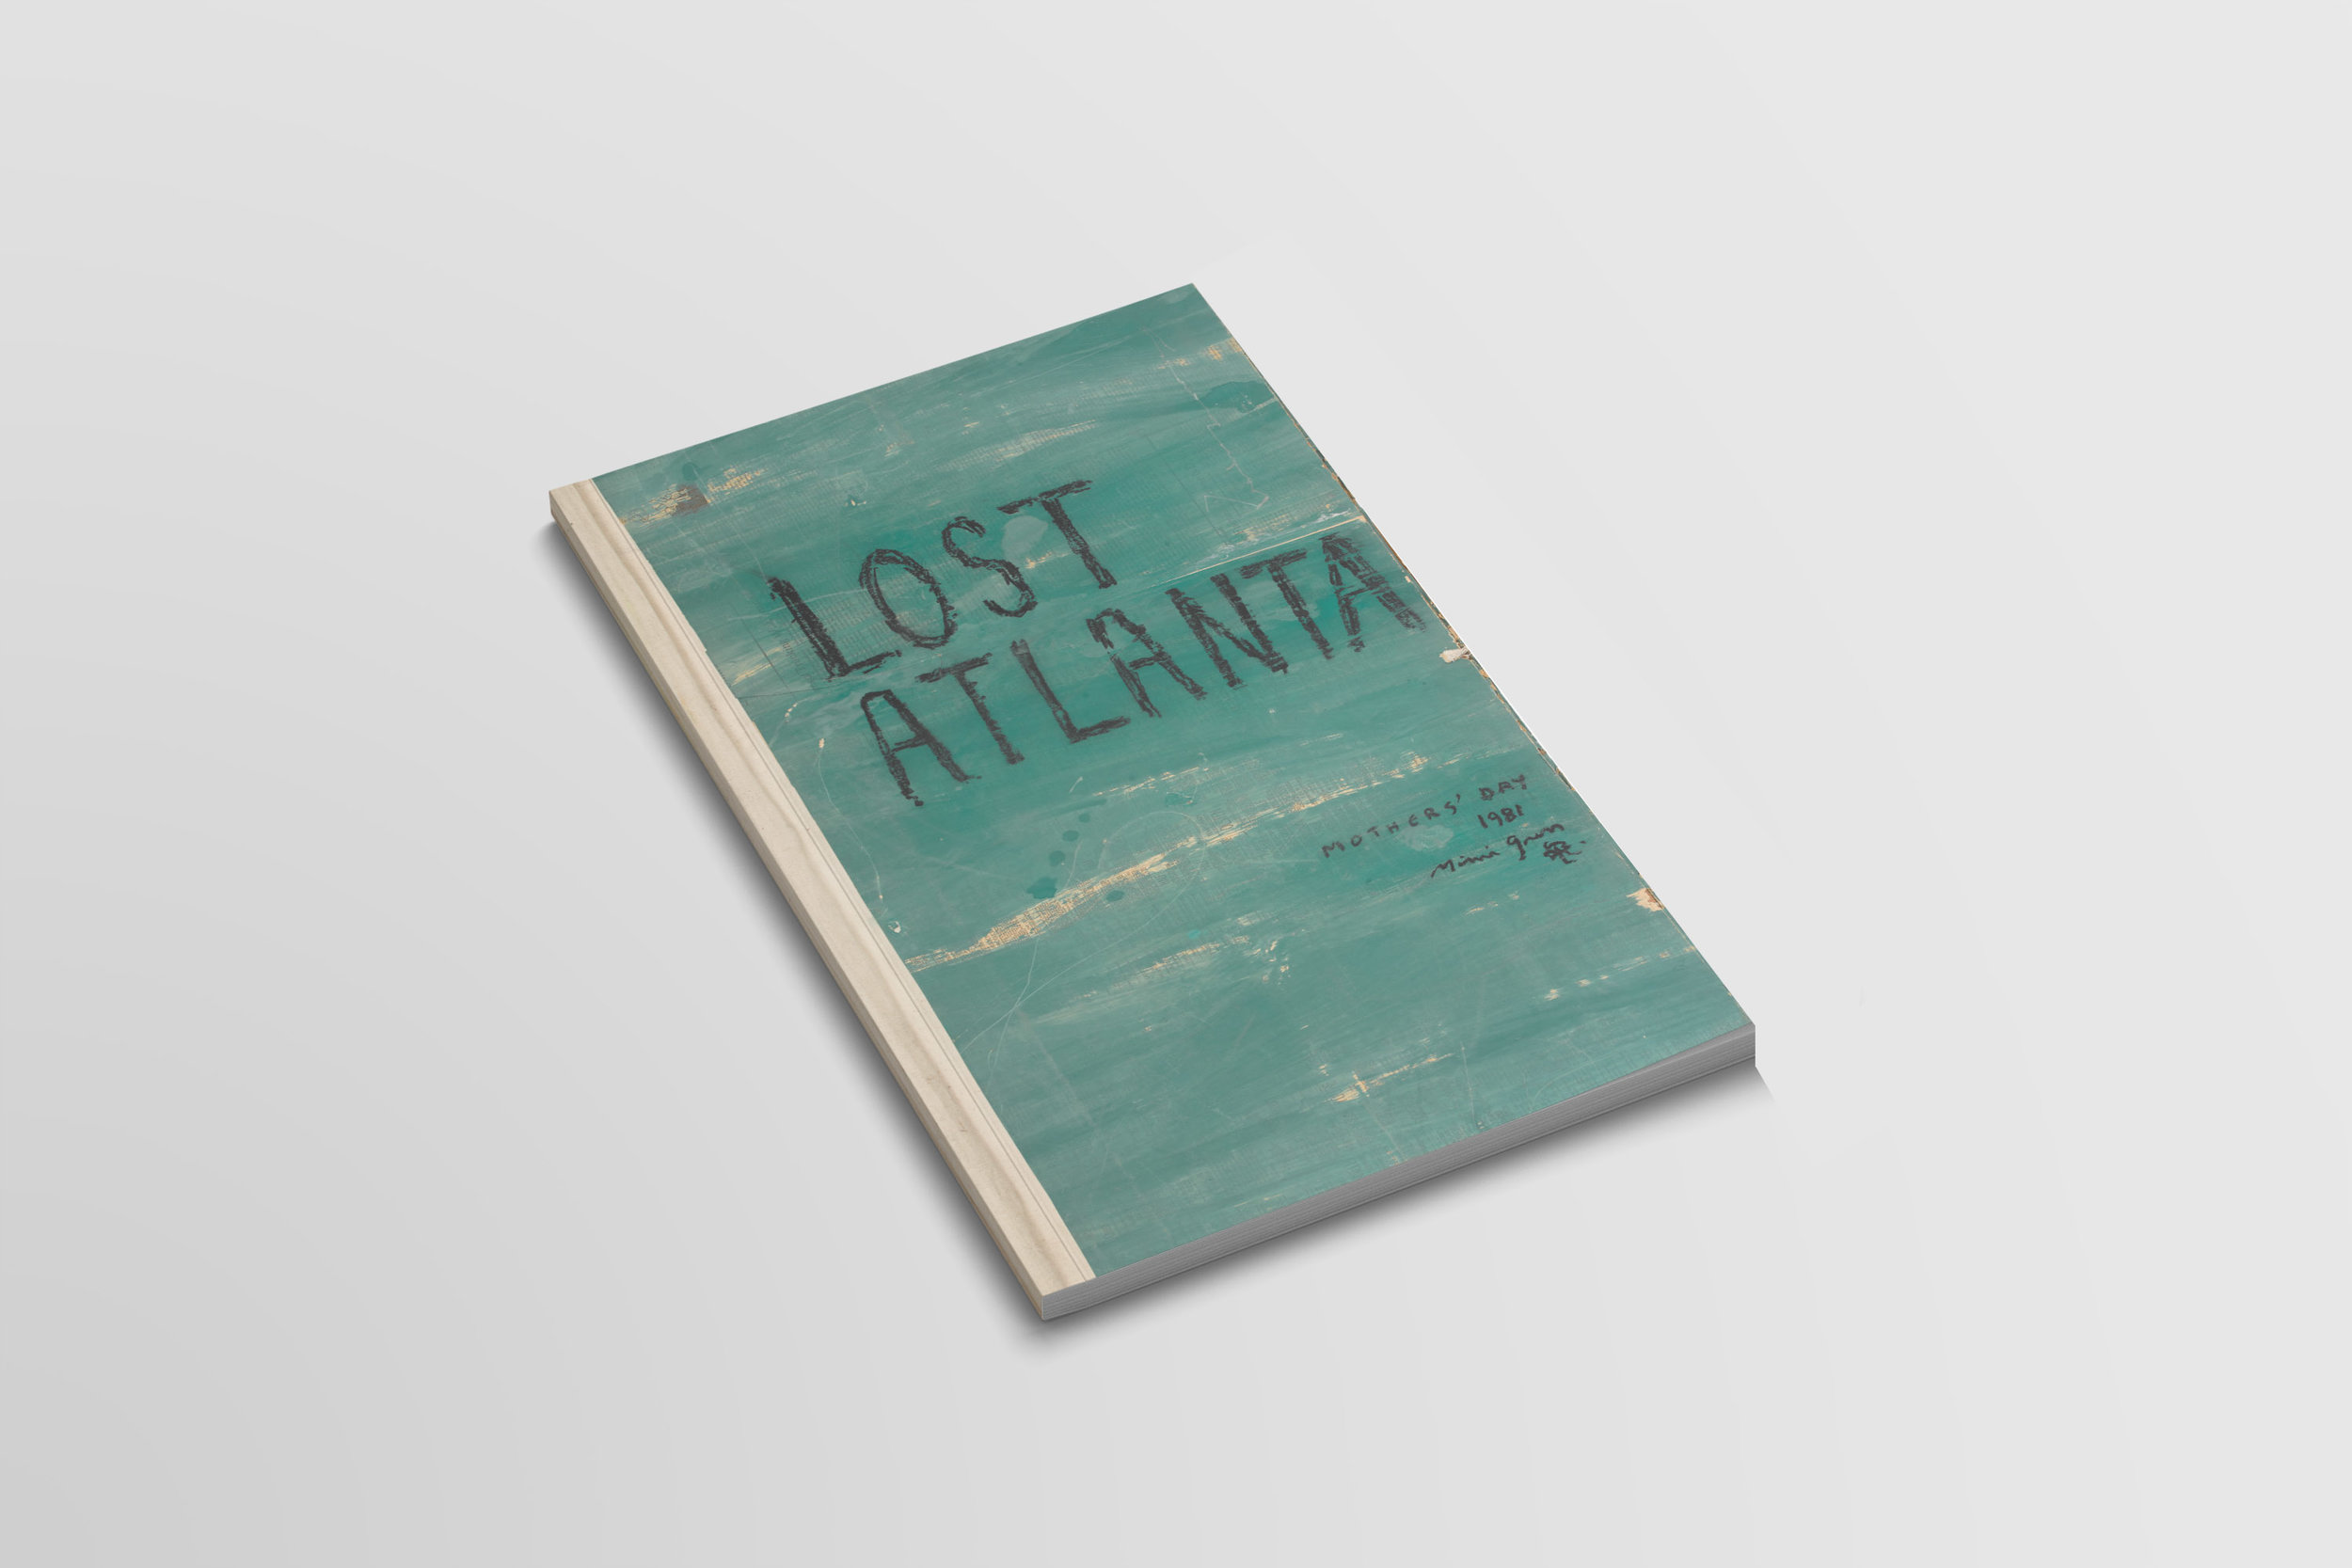 Lost Atlanta, 1981 - Mimi GrossSoftcover, 8.5 x 14 in. / 64 pages